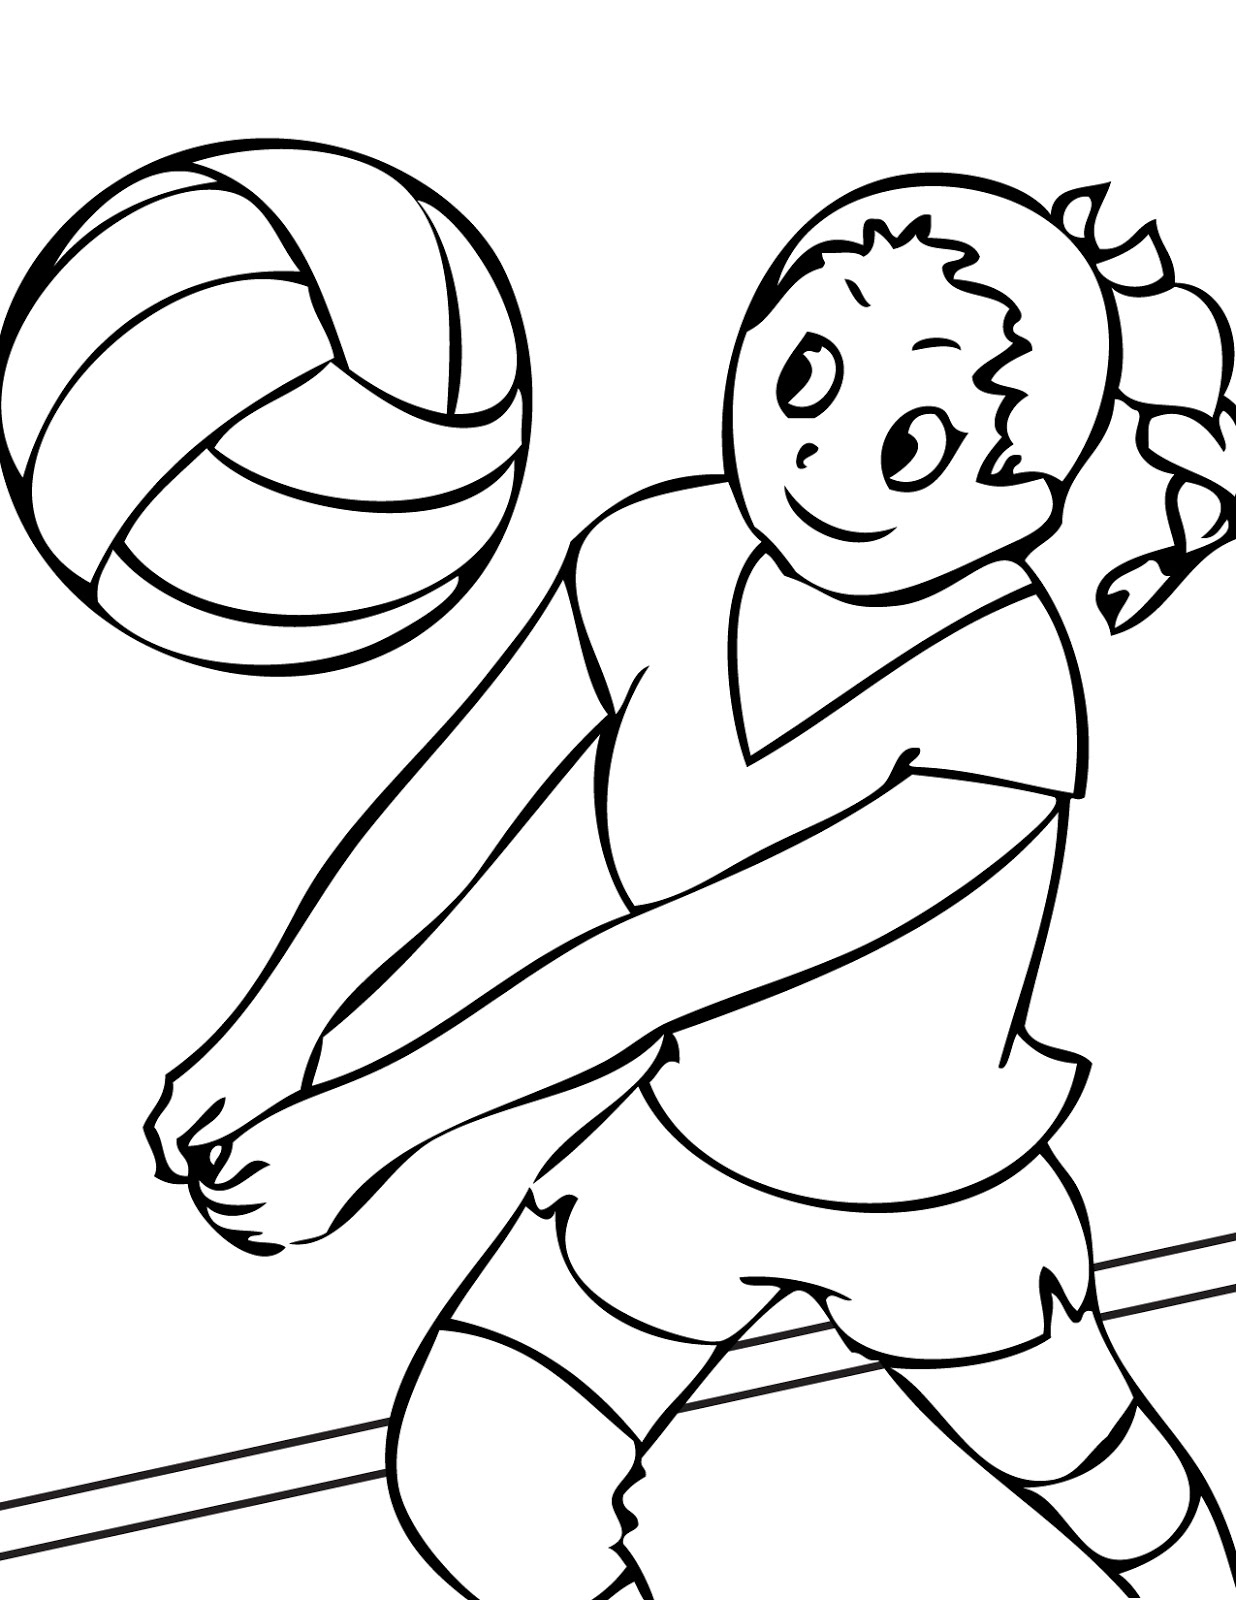 sport coloring pages sports for children sports kids coloring pages sport pages coloring